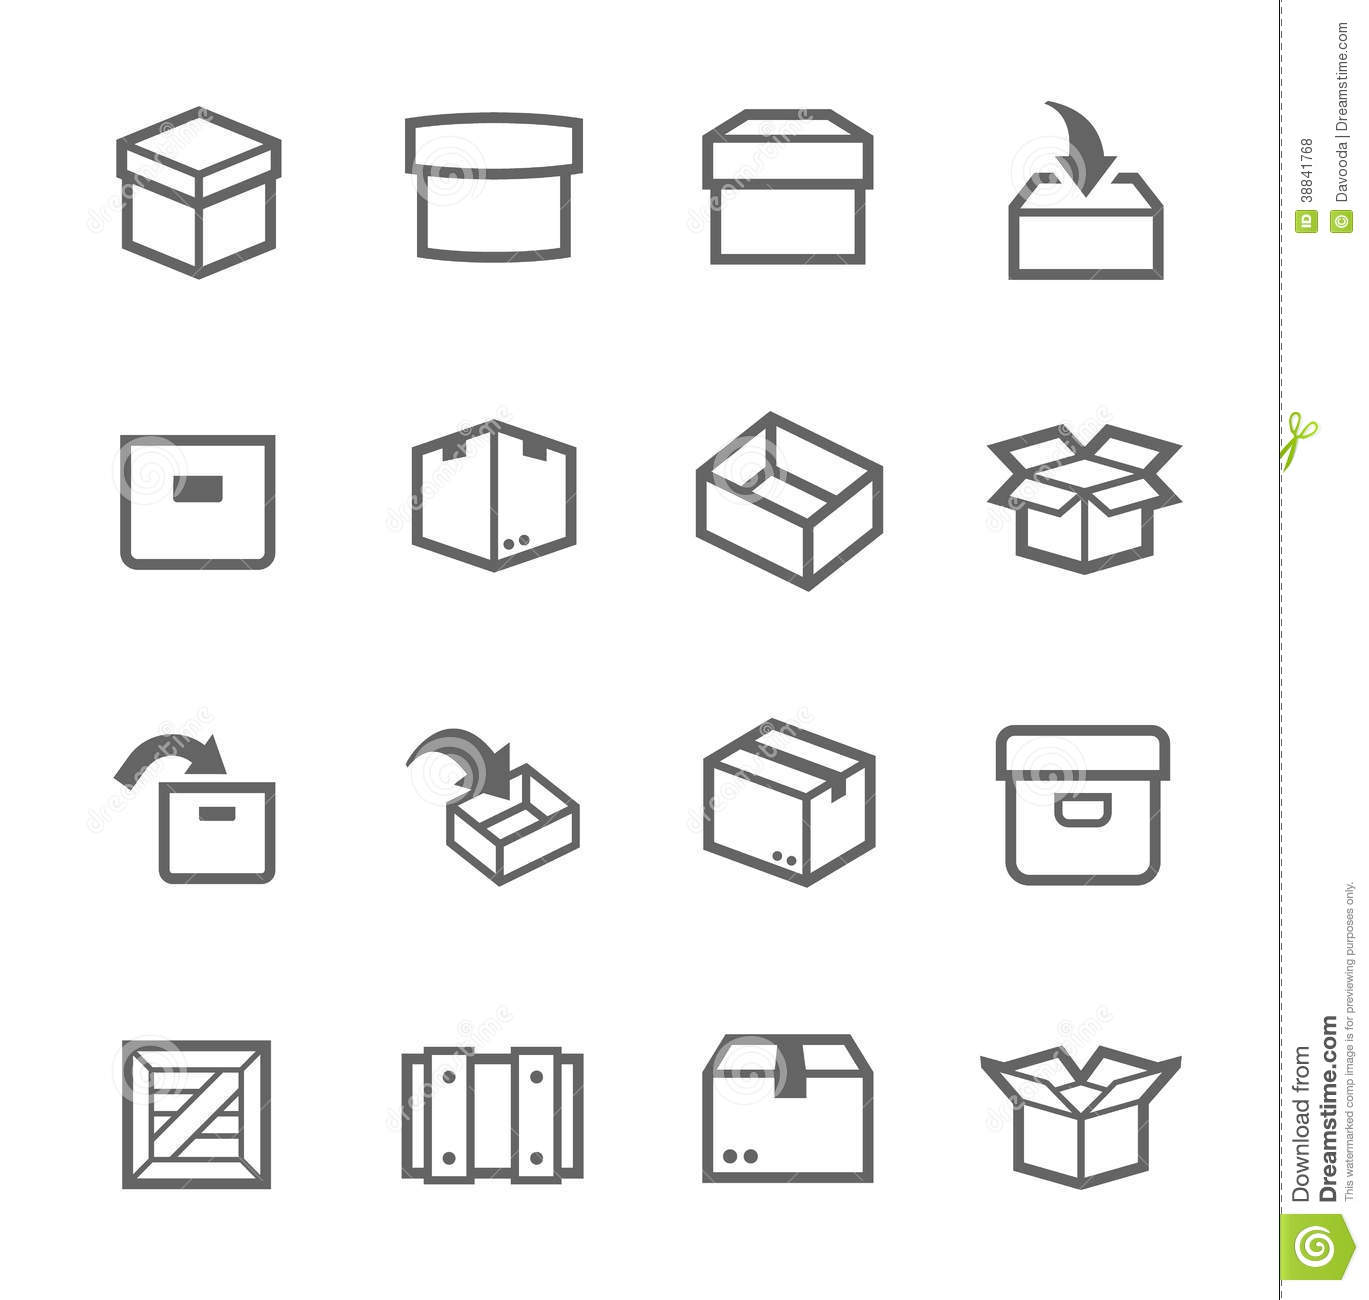 box and crates icons stock vector image 38841768 Pirate Chest Clip Art Empty Treasure Chest